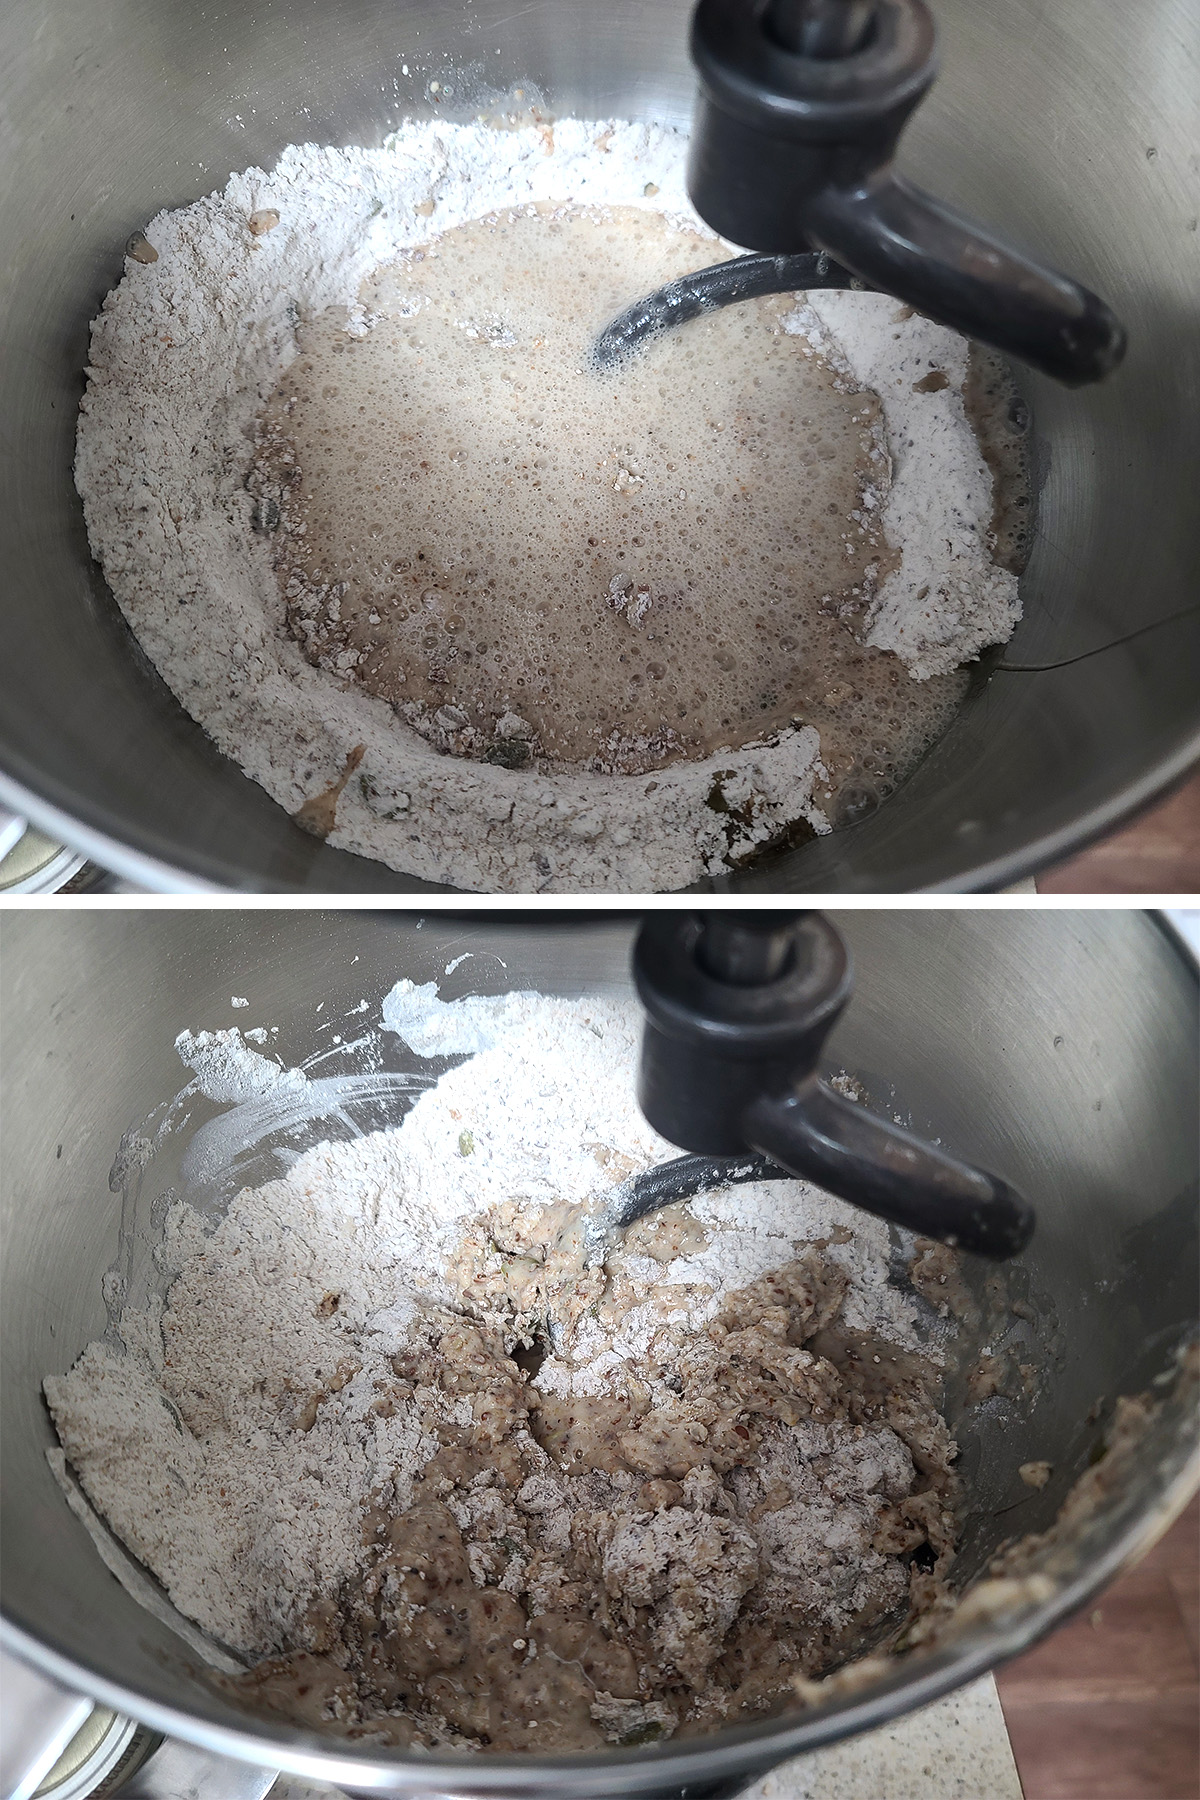 A two part image showing the liquid being poured into the mixer bowl of dry ingredients, and after it's been stirred in a little.